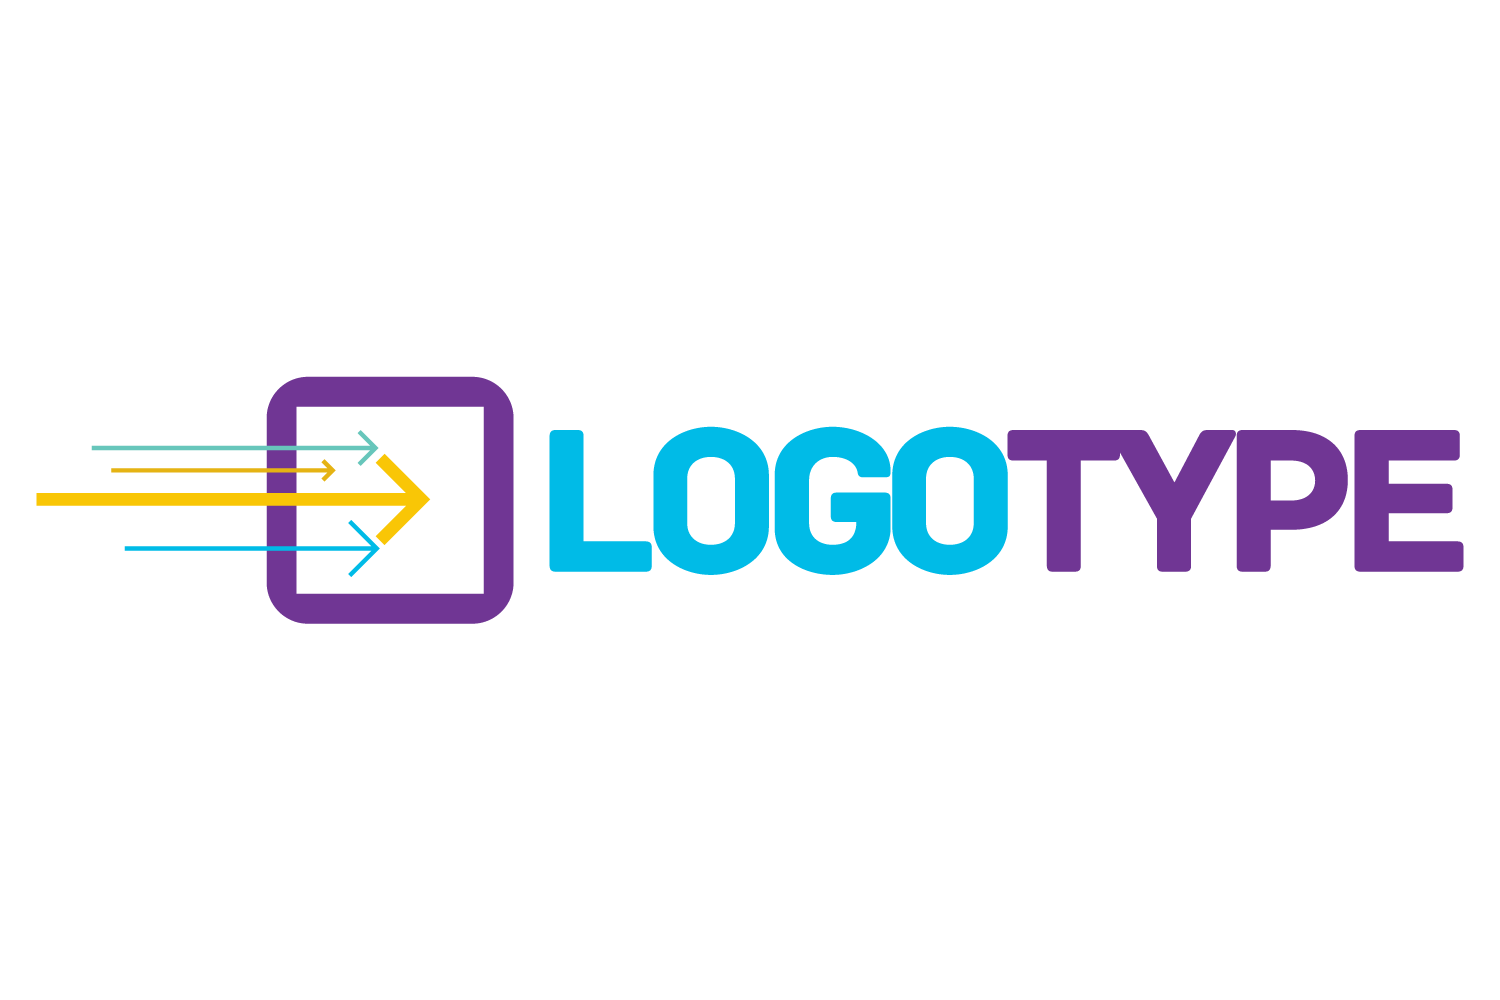 Your company logo png. How important it is